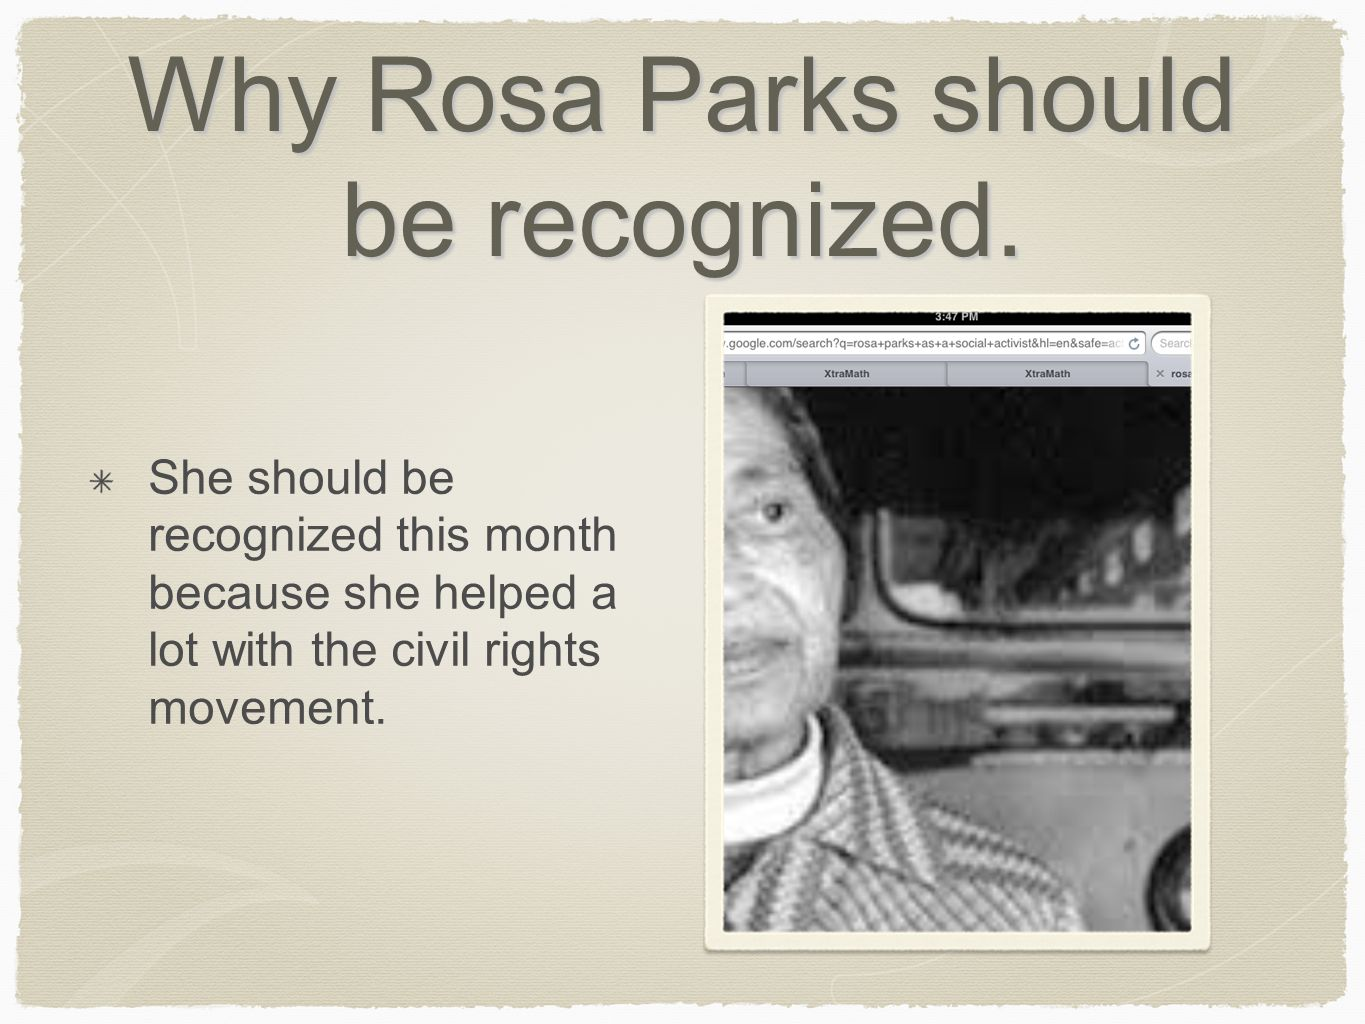 Why Rosa Parks should be recognized.